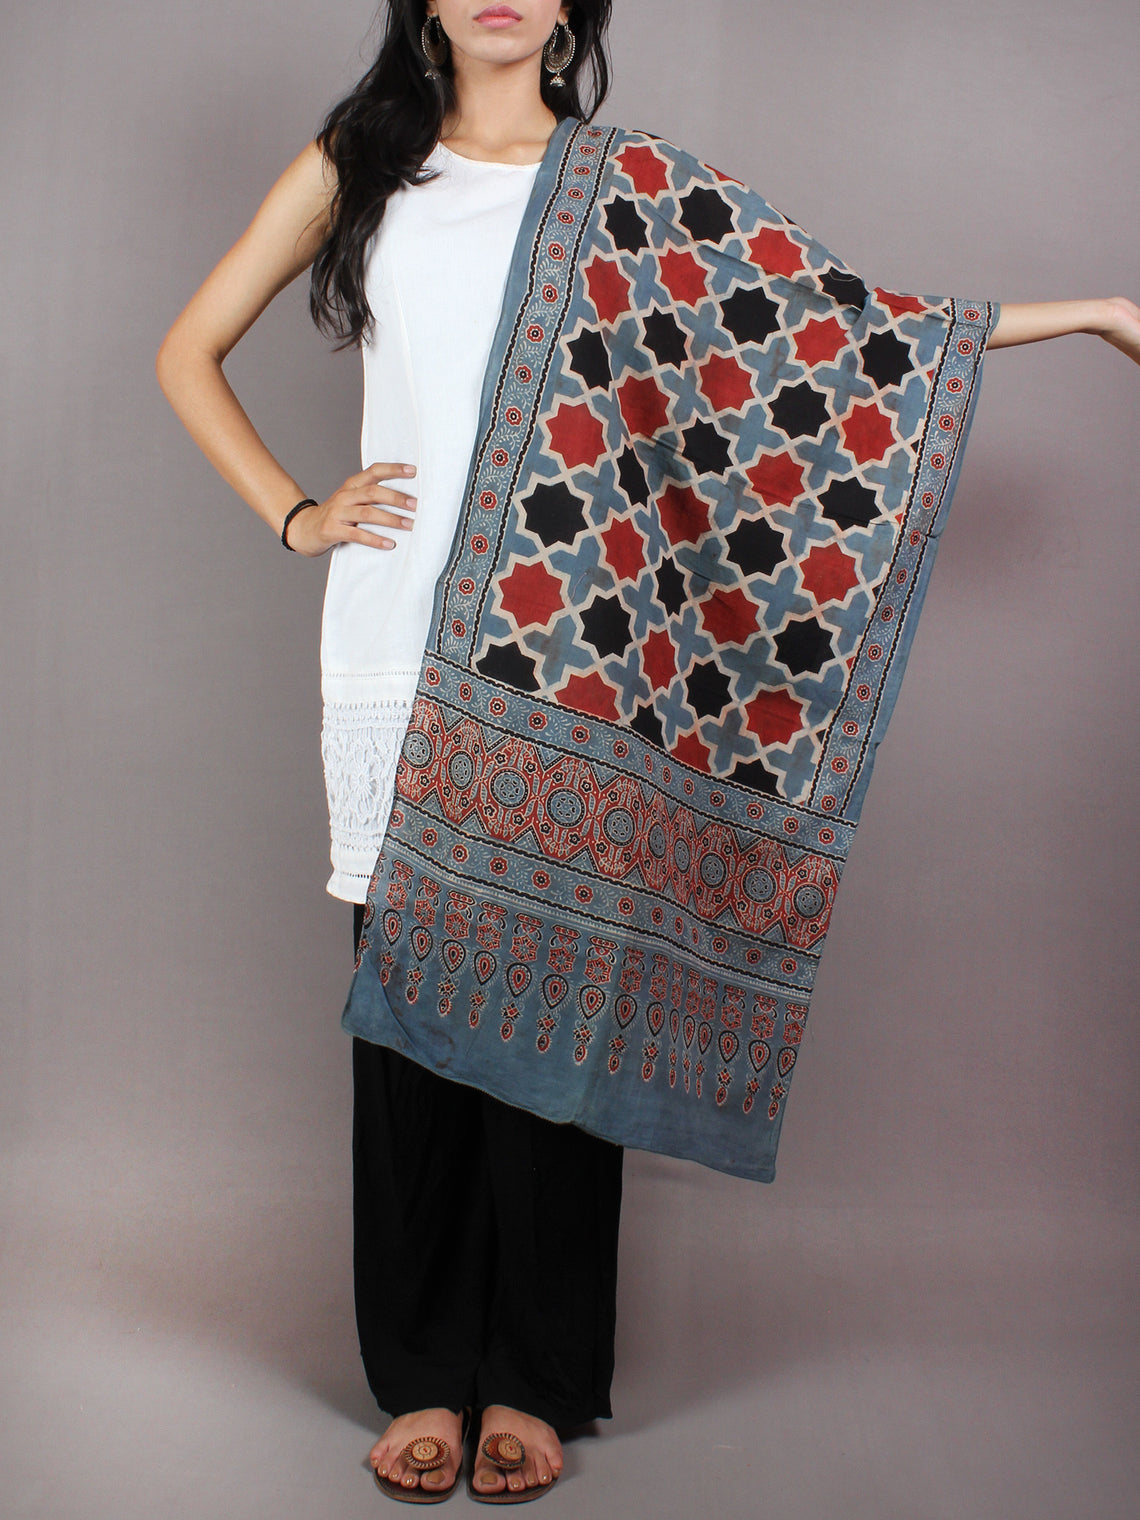 Stone Blue Red Black Mughal Nakashi Ajrakh Hand Block Printed Cotton Stole - S6317039